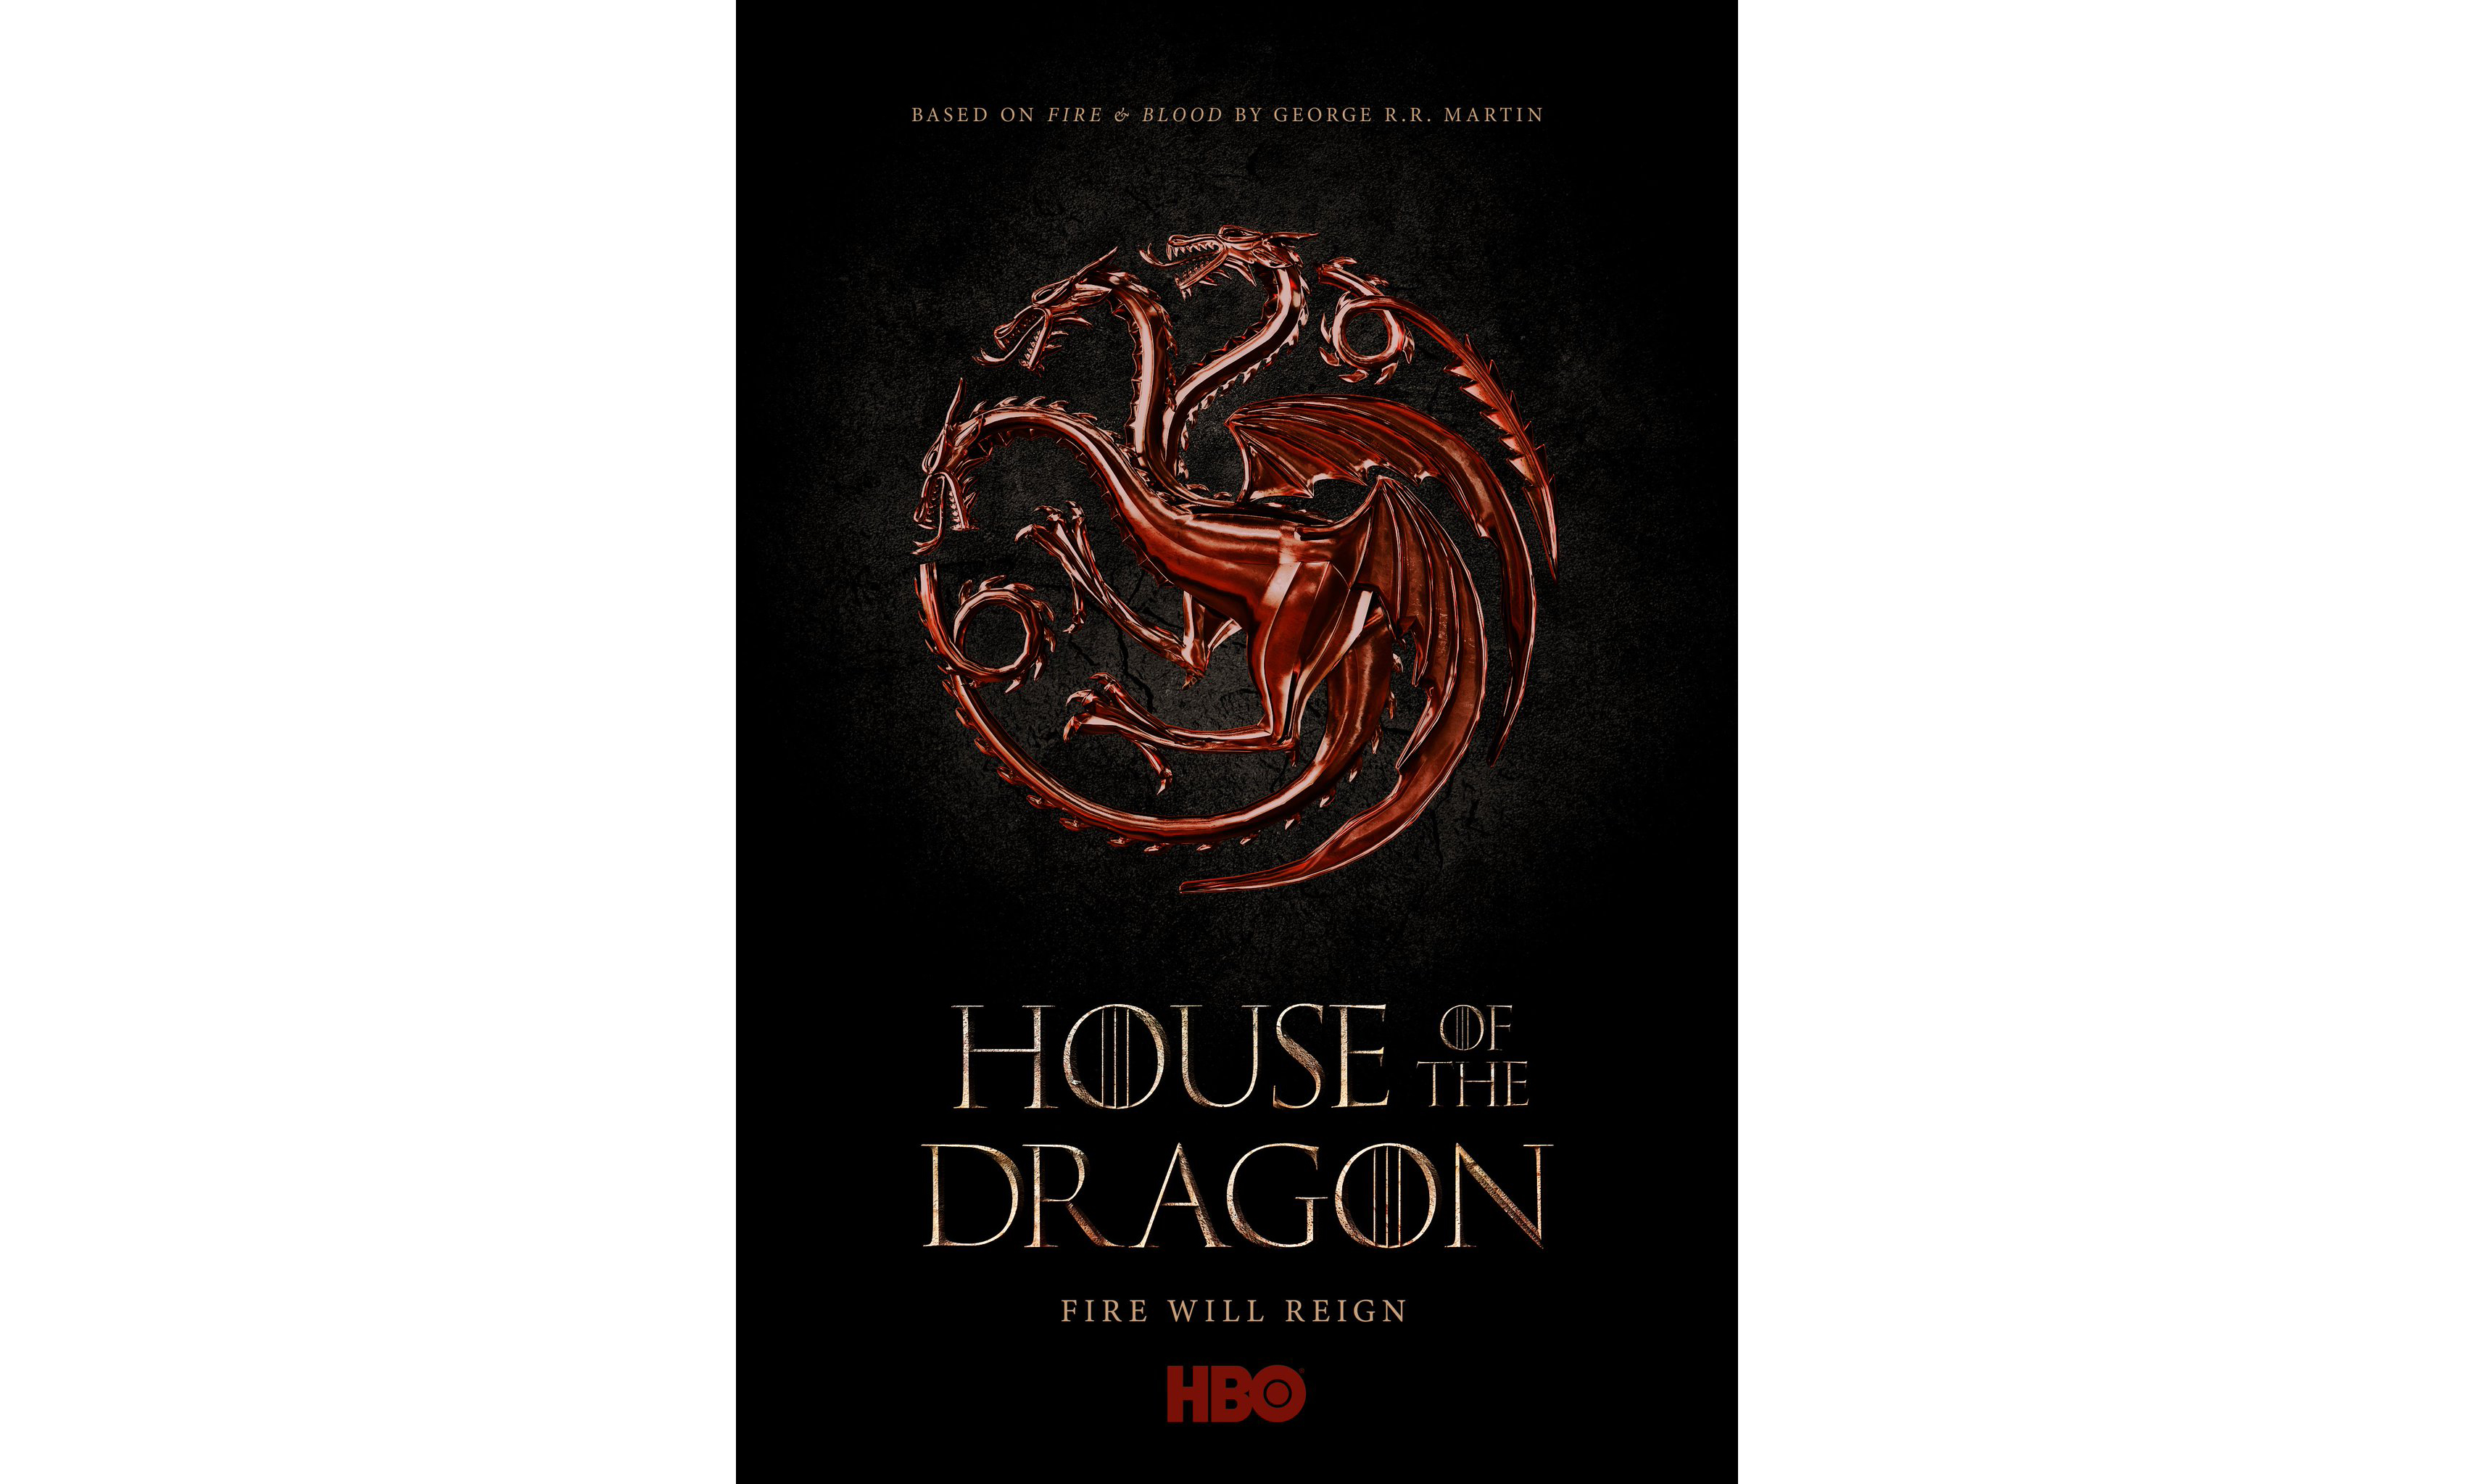 HBO 宣布预定《权游》衍生剧《House Of The Dragon》